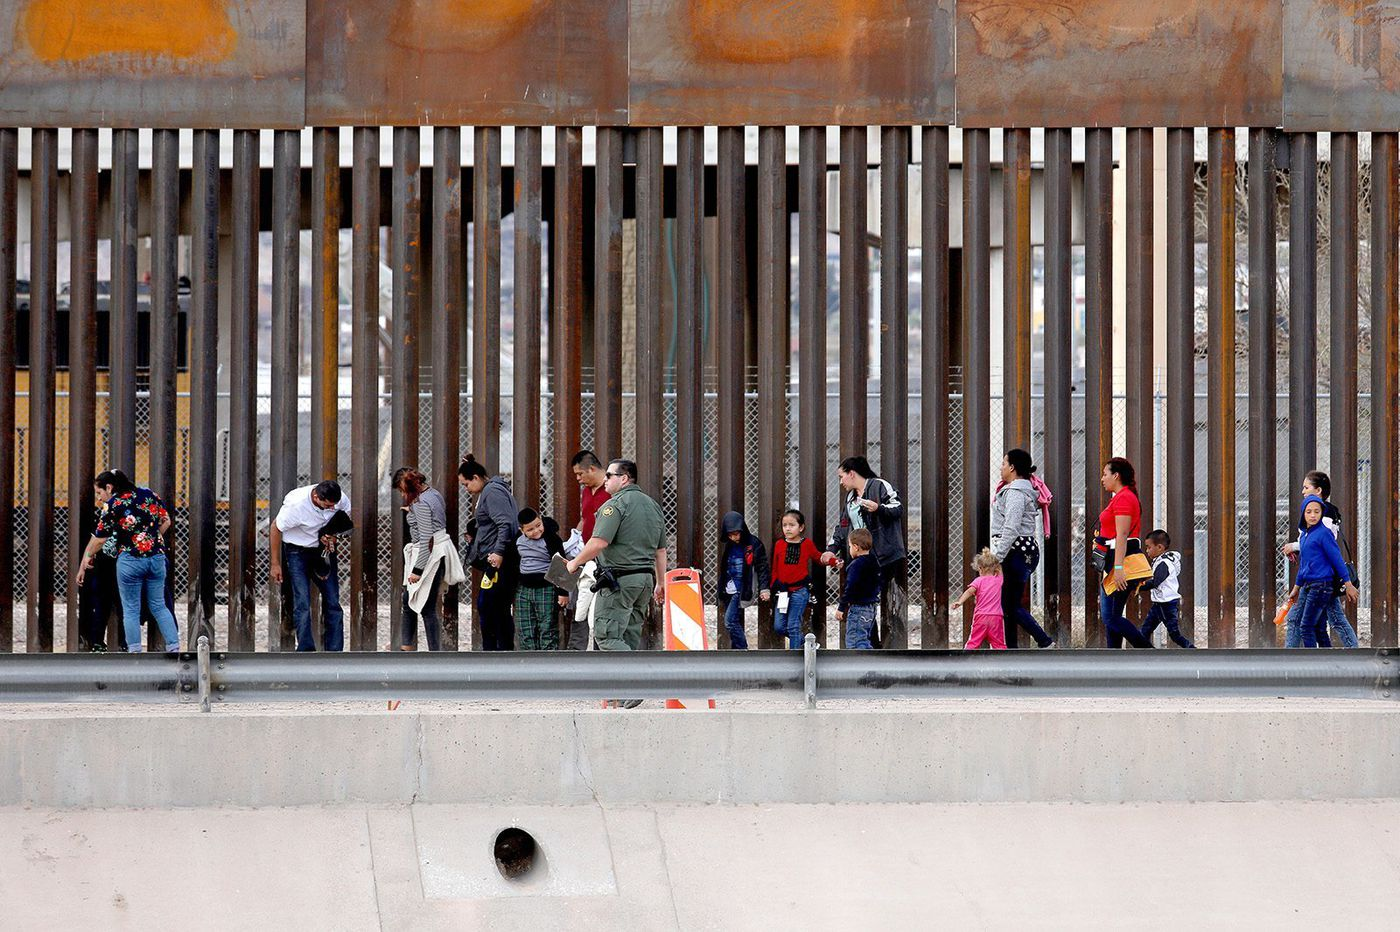 Texas lawmaker: Illegal immigration at US-Mexico border creating 'chaos'